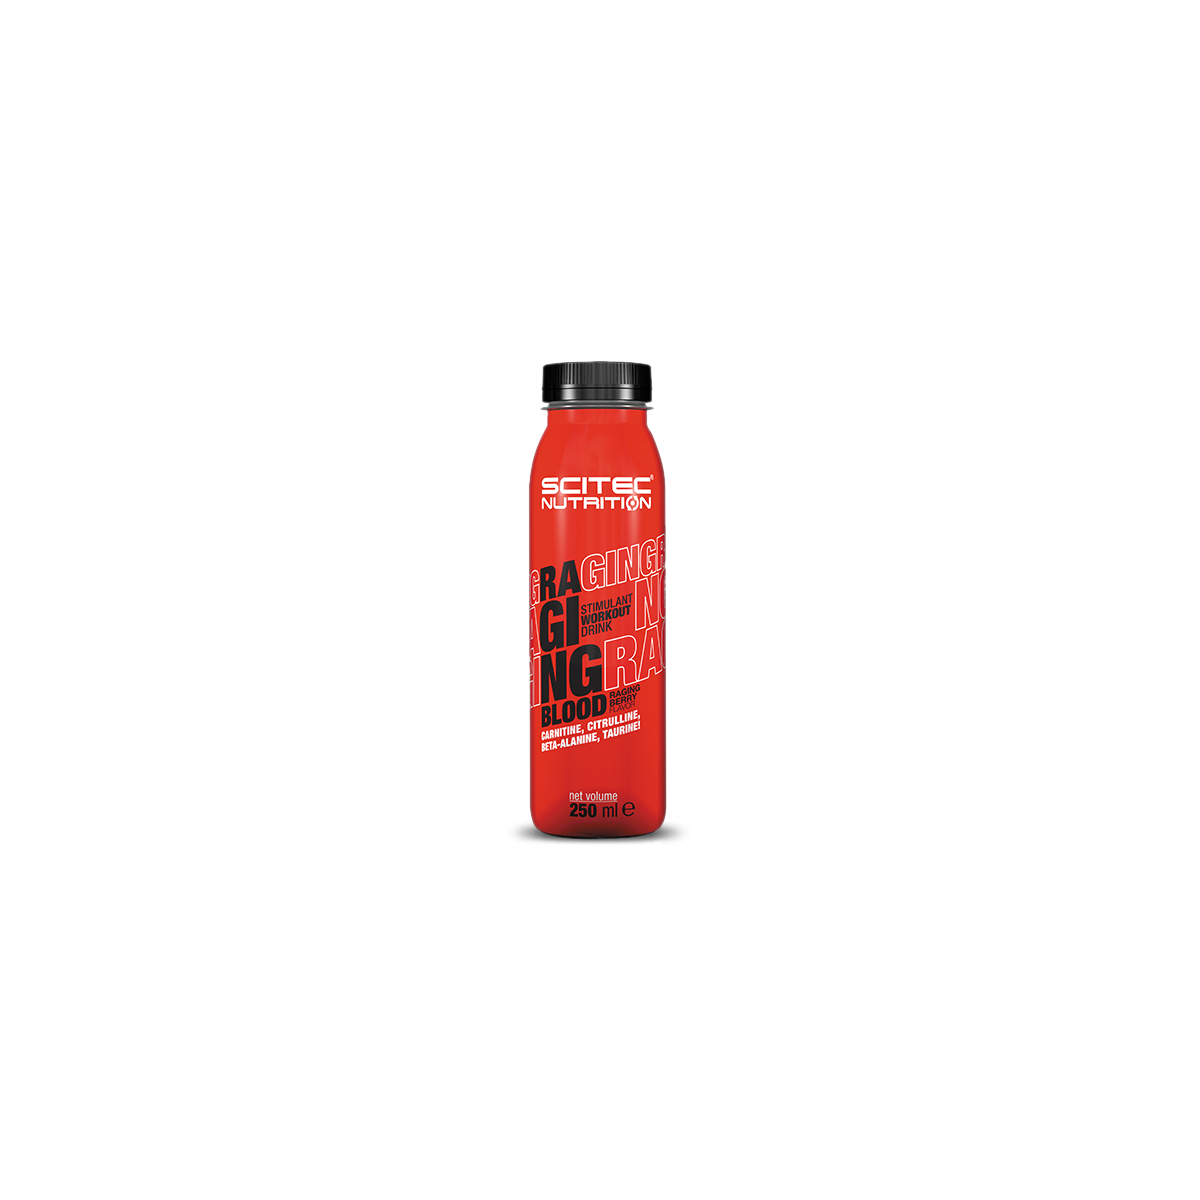 RAGING BLOOD - (1 x 250ml)